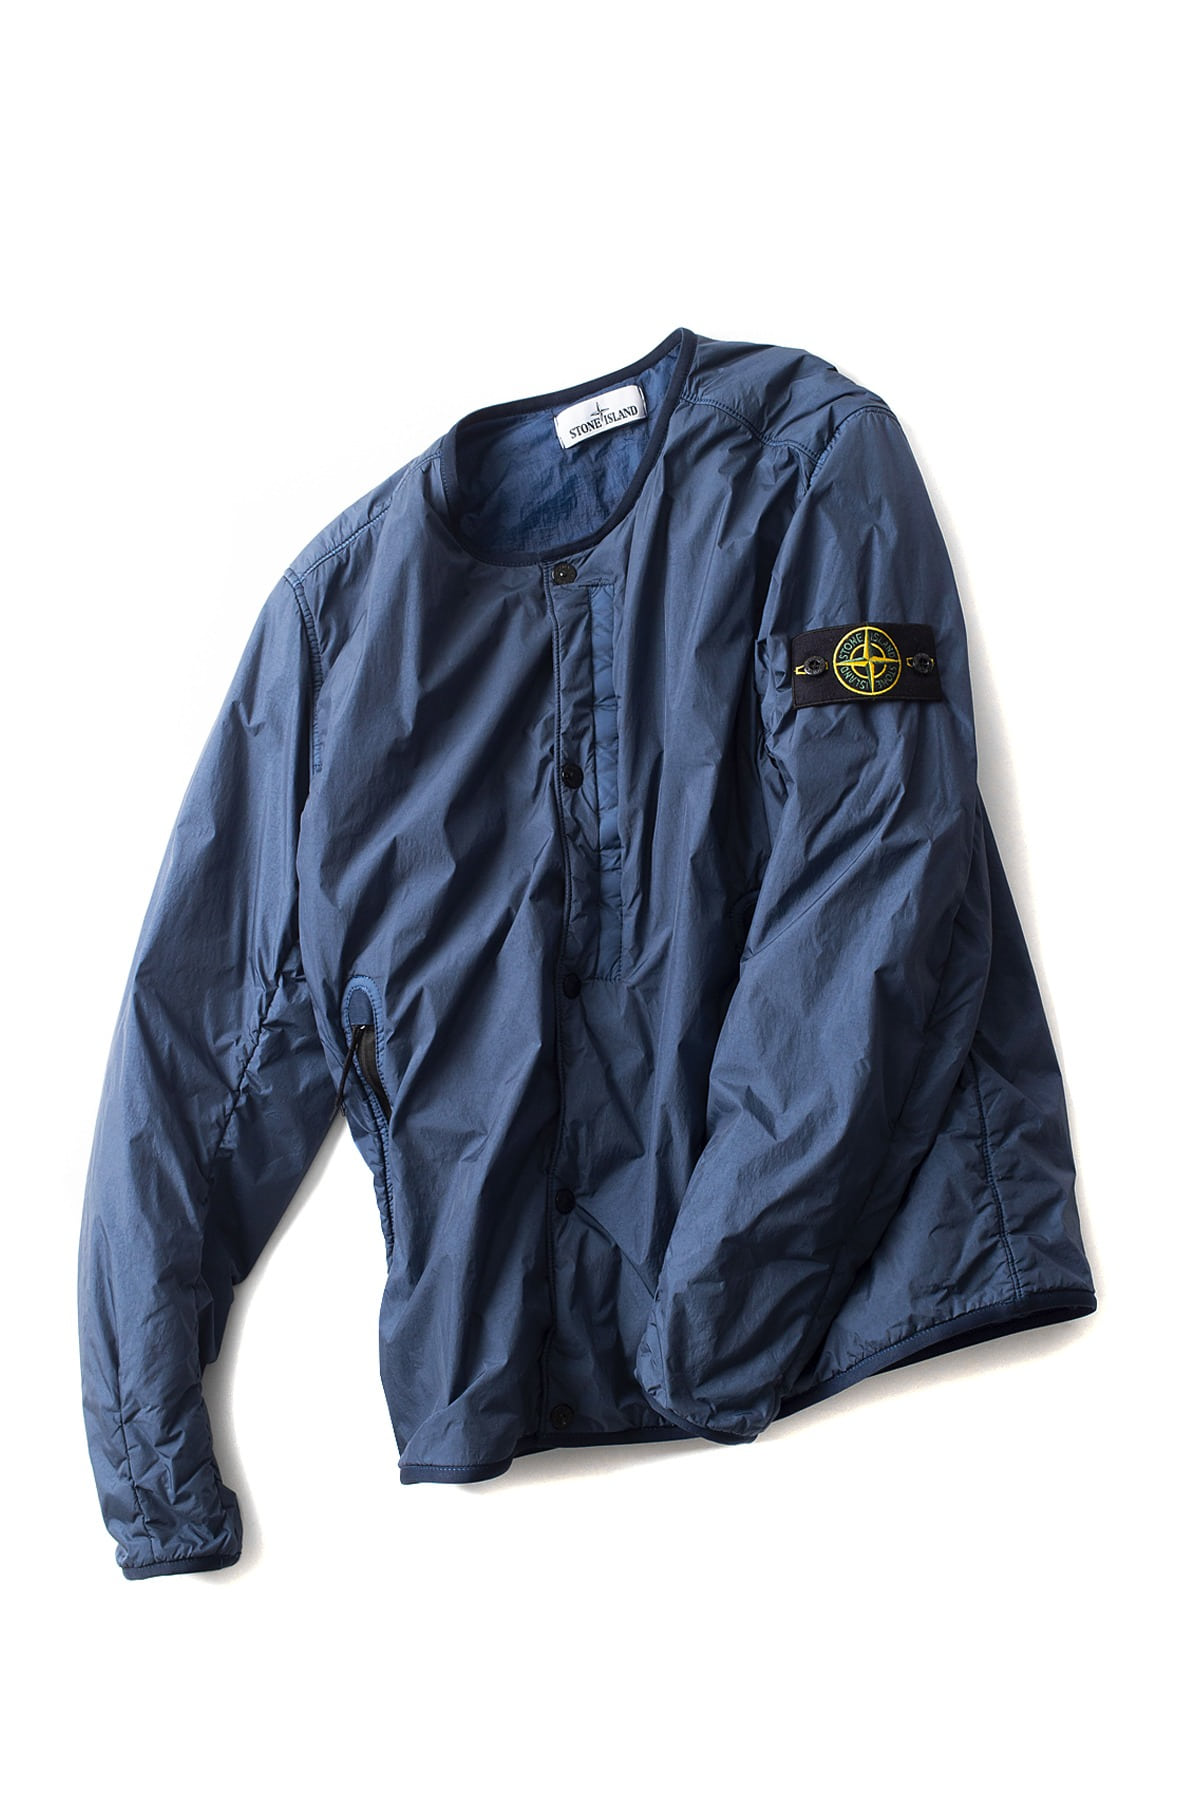 Stone Island : Garment Dyed Crinkle Reps NY (Blue)